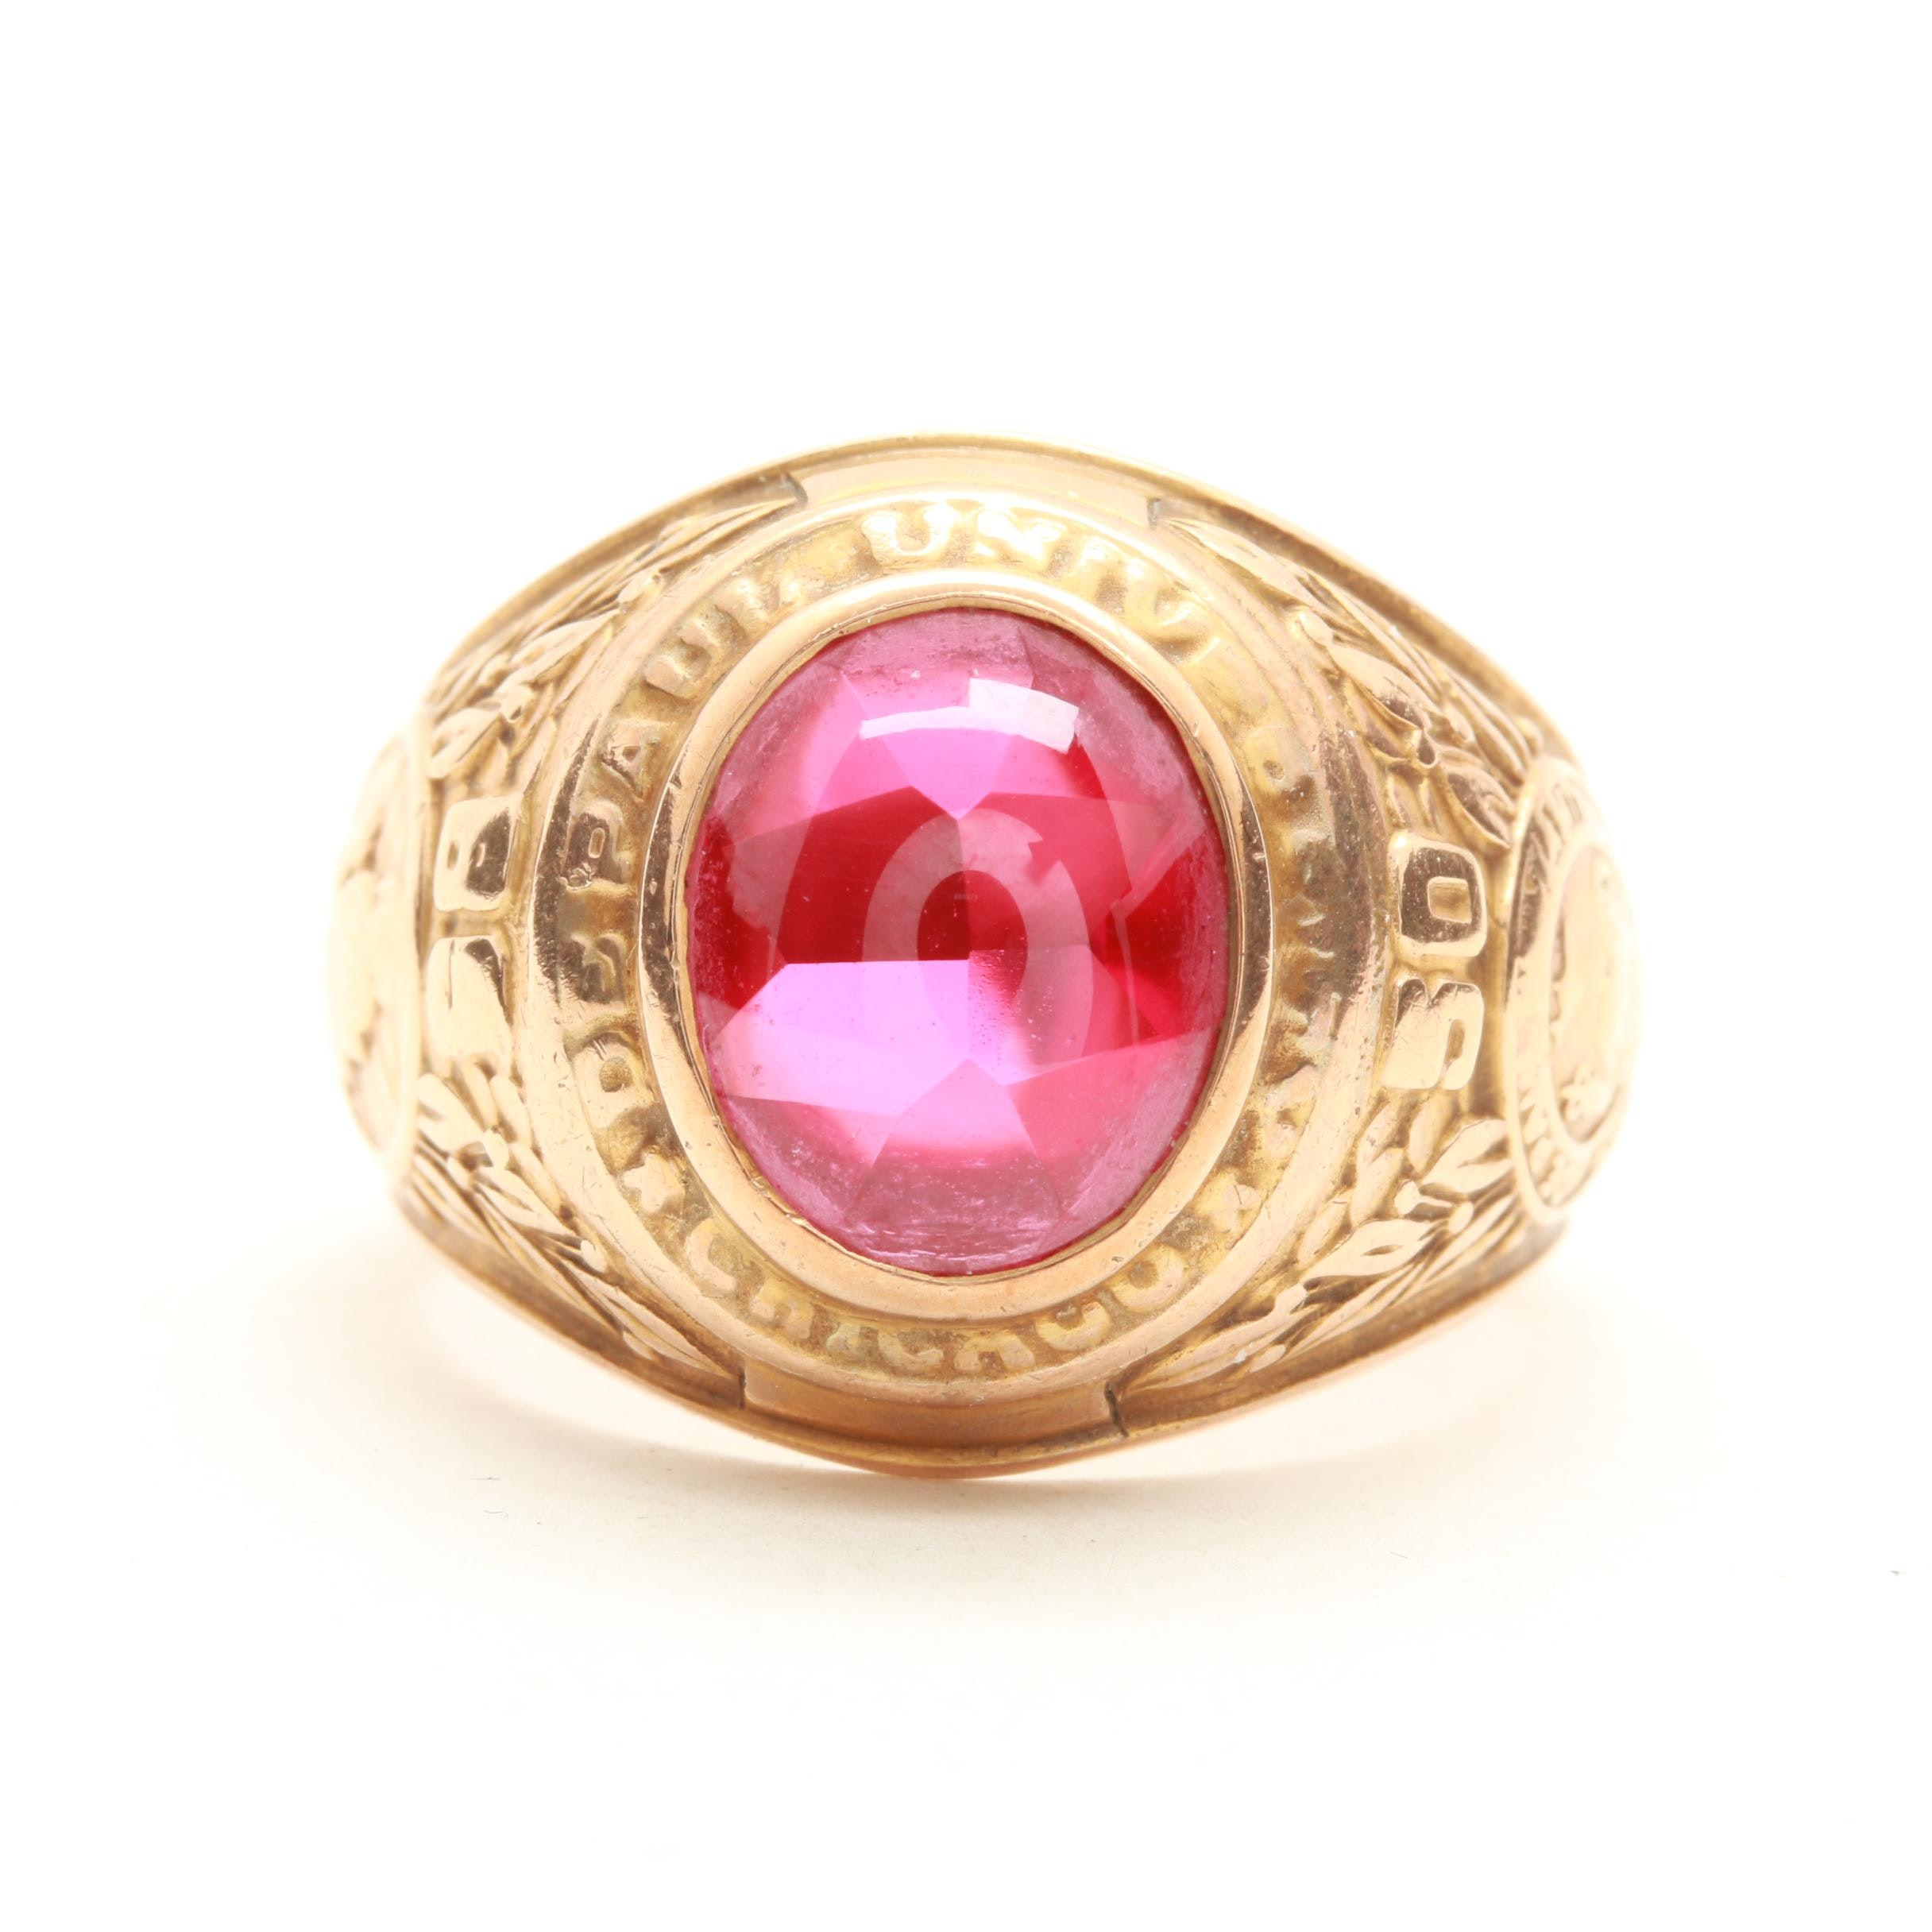 10K Yellow Gold Synthetic Spinel DePaul University Class Ring